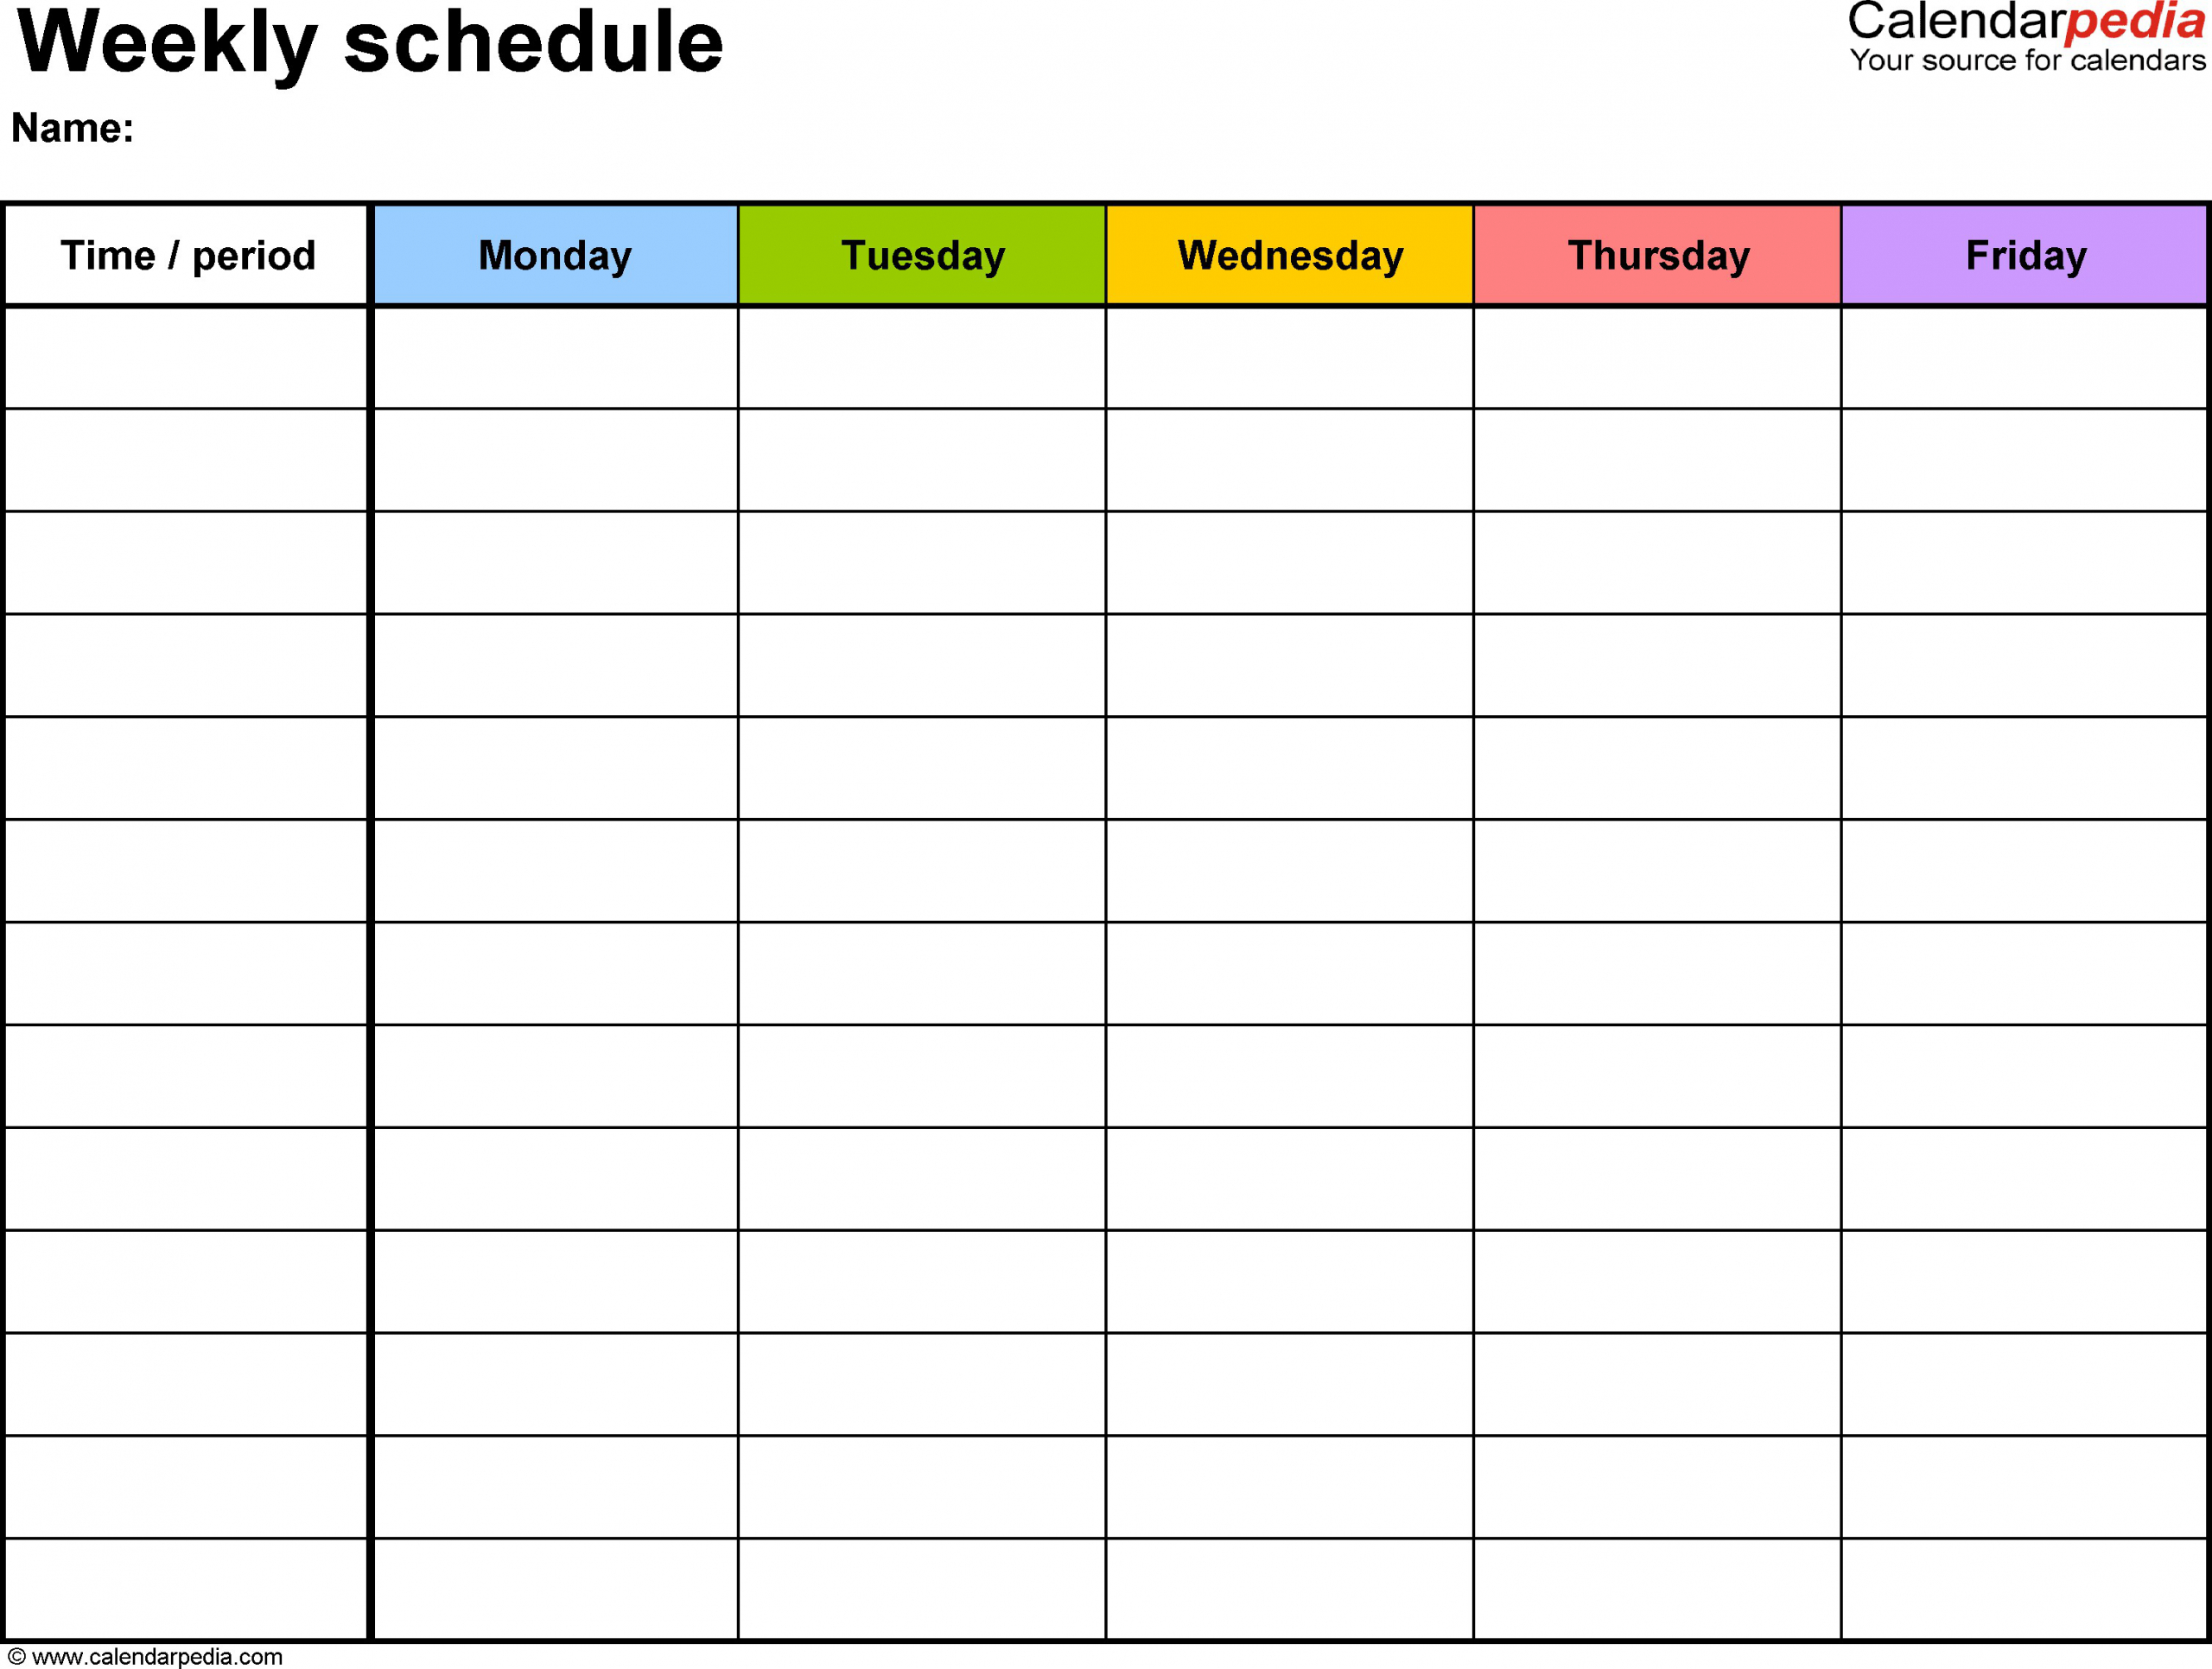 Monday Friday Calendar In 2020 | Daily Schedule Template regarding Monday Thru Friday Schedule Template